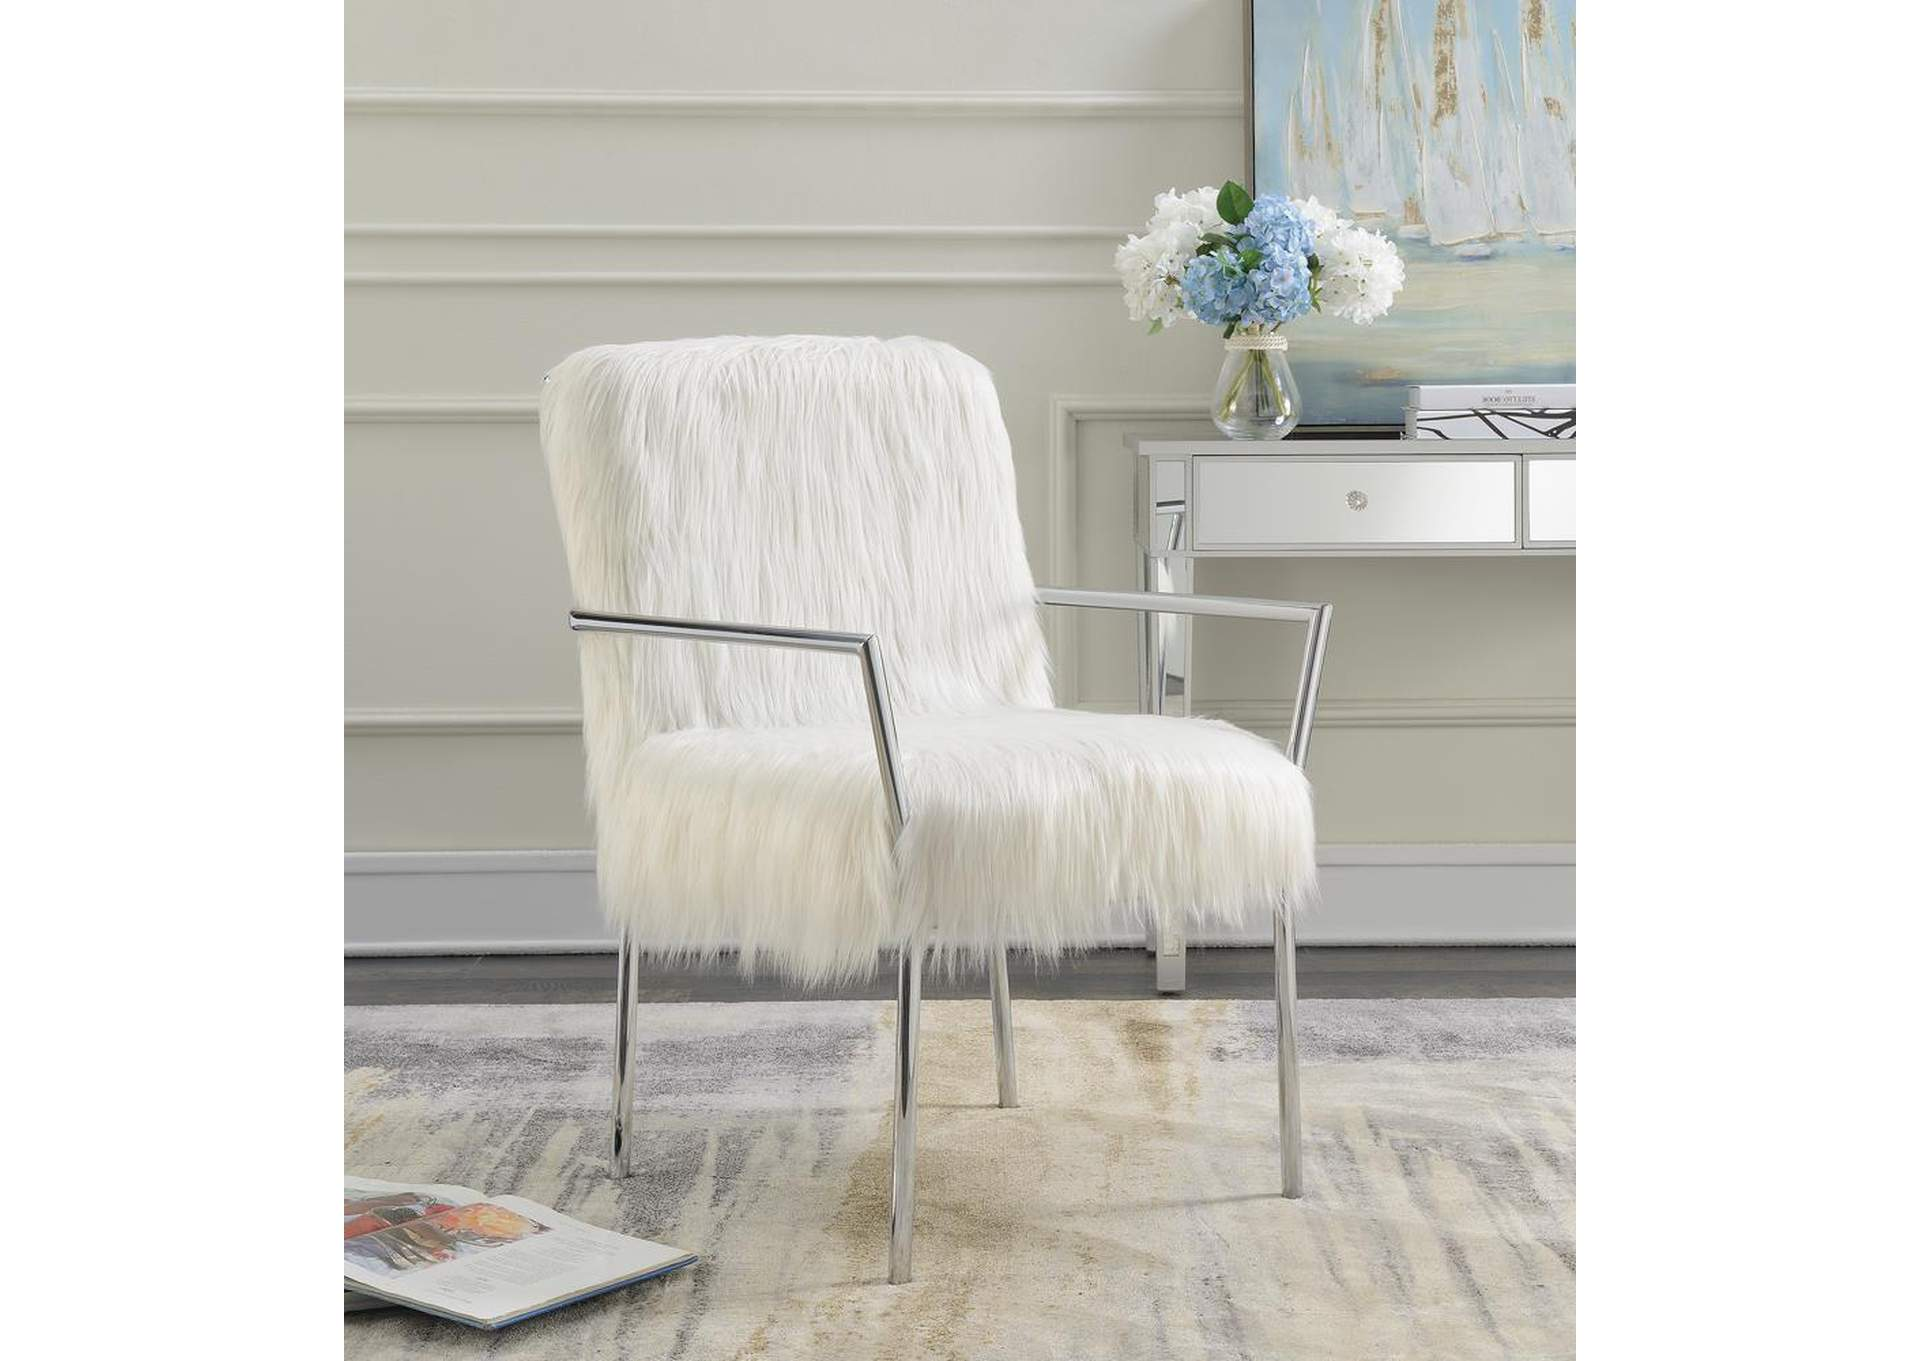 Swirl Contemporary White Accent Chair,Coaster Furniture